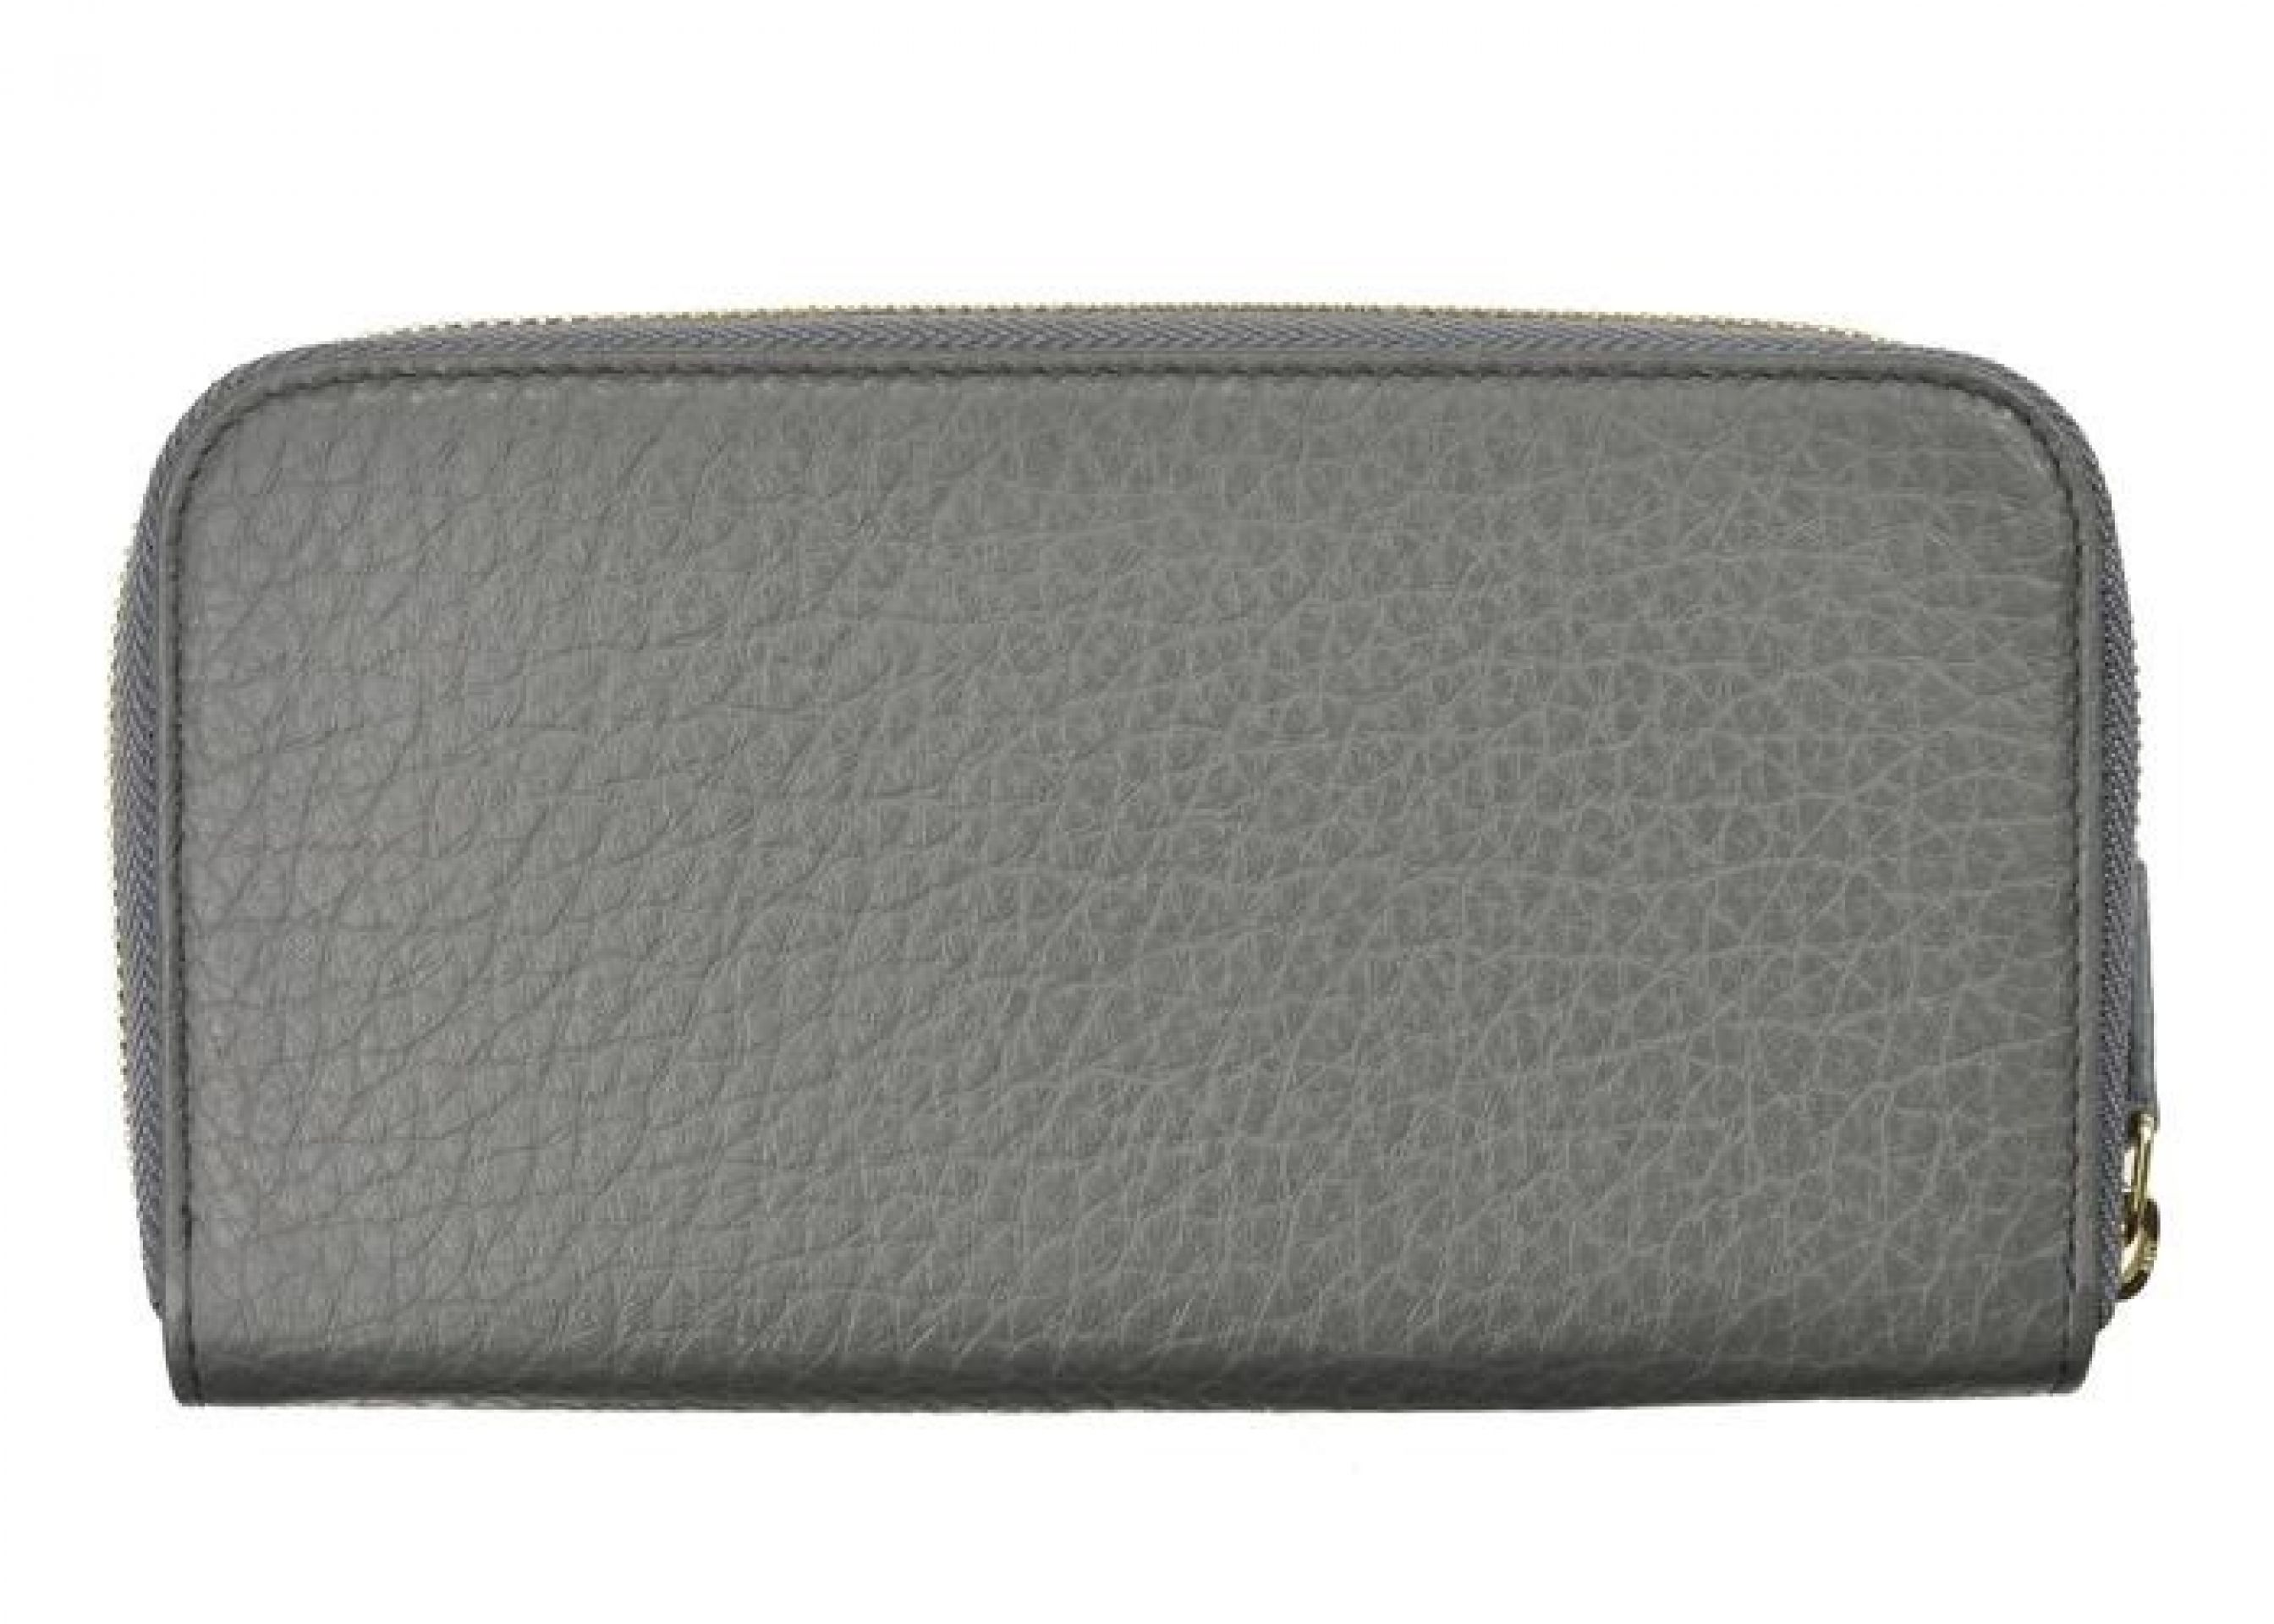 VERSACE COLLECTION GRAY GRAINED LEATHER ZIP AROUND CONTINENTAL WALLET